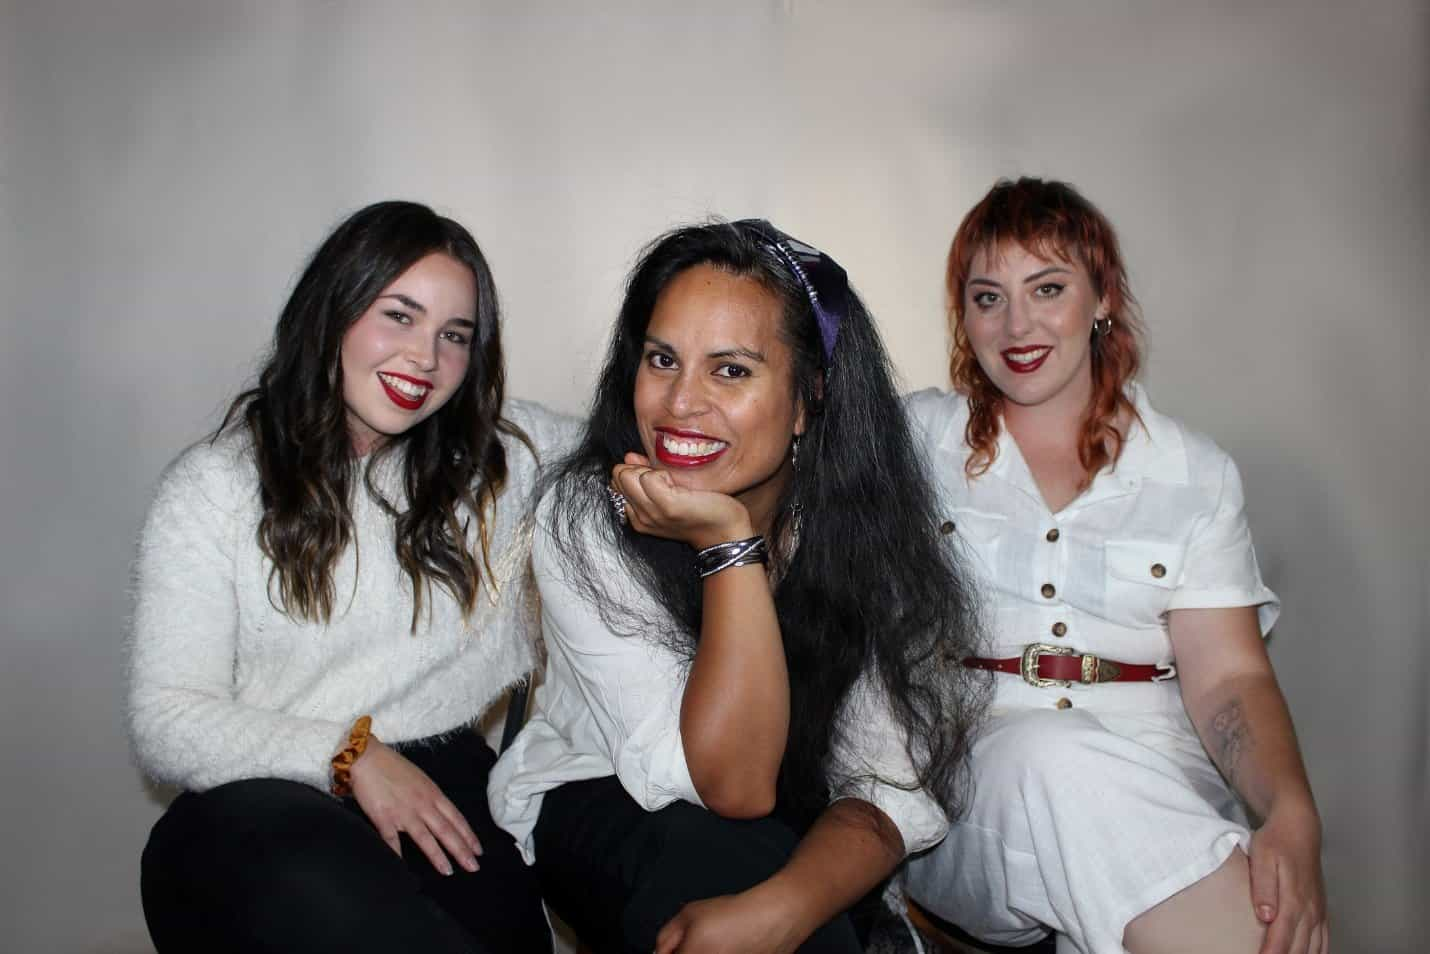 Q&A Scene: Crystal, Belle and Ruby ~ THE DK EFFECT